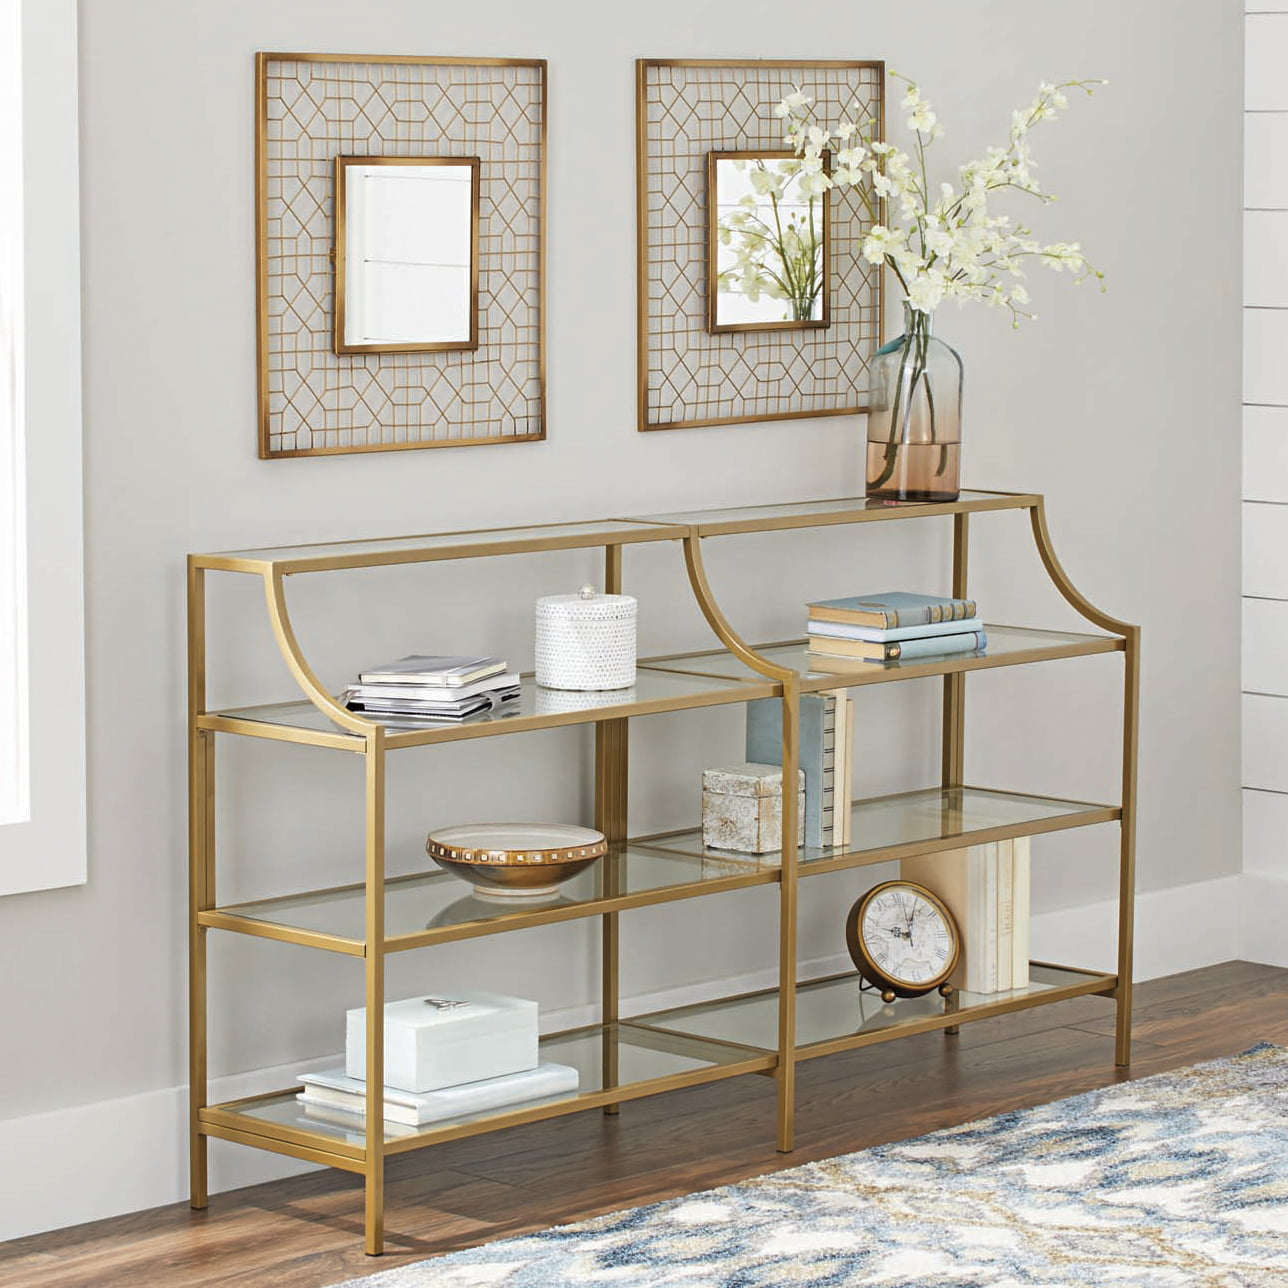 Better Homes and Gardens Nola Console Table, Gold Finish by Sauder